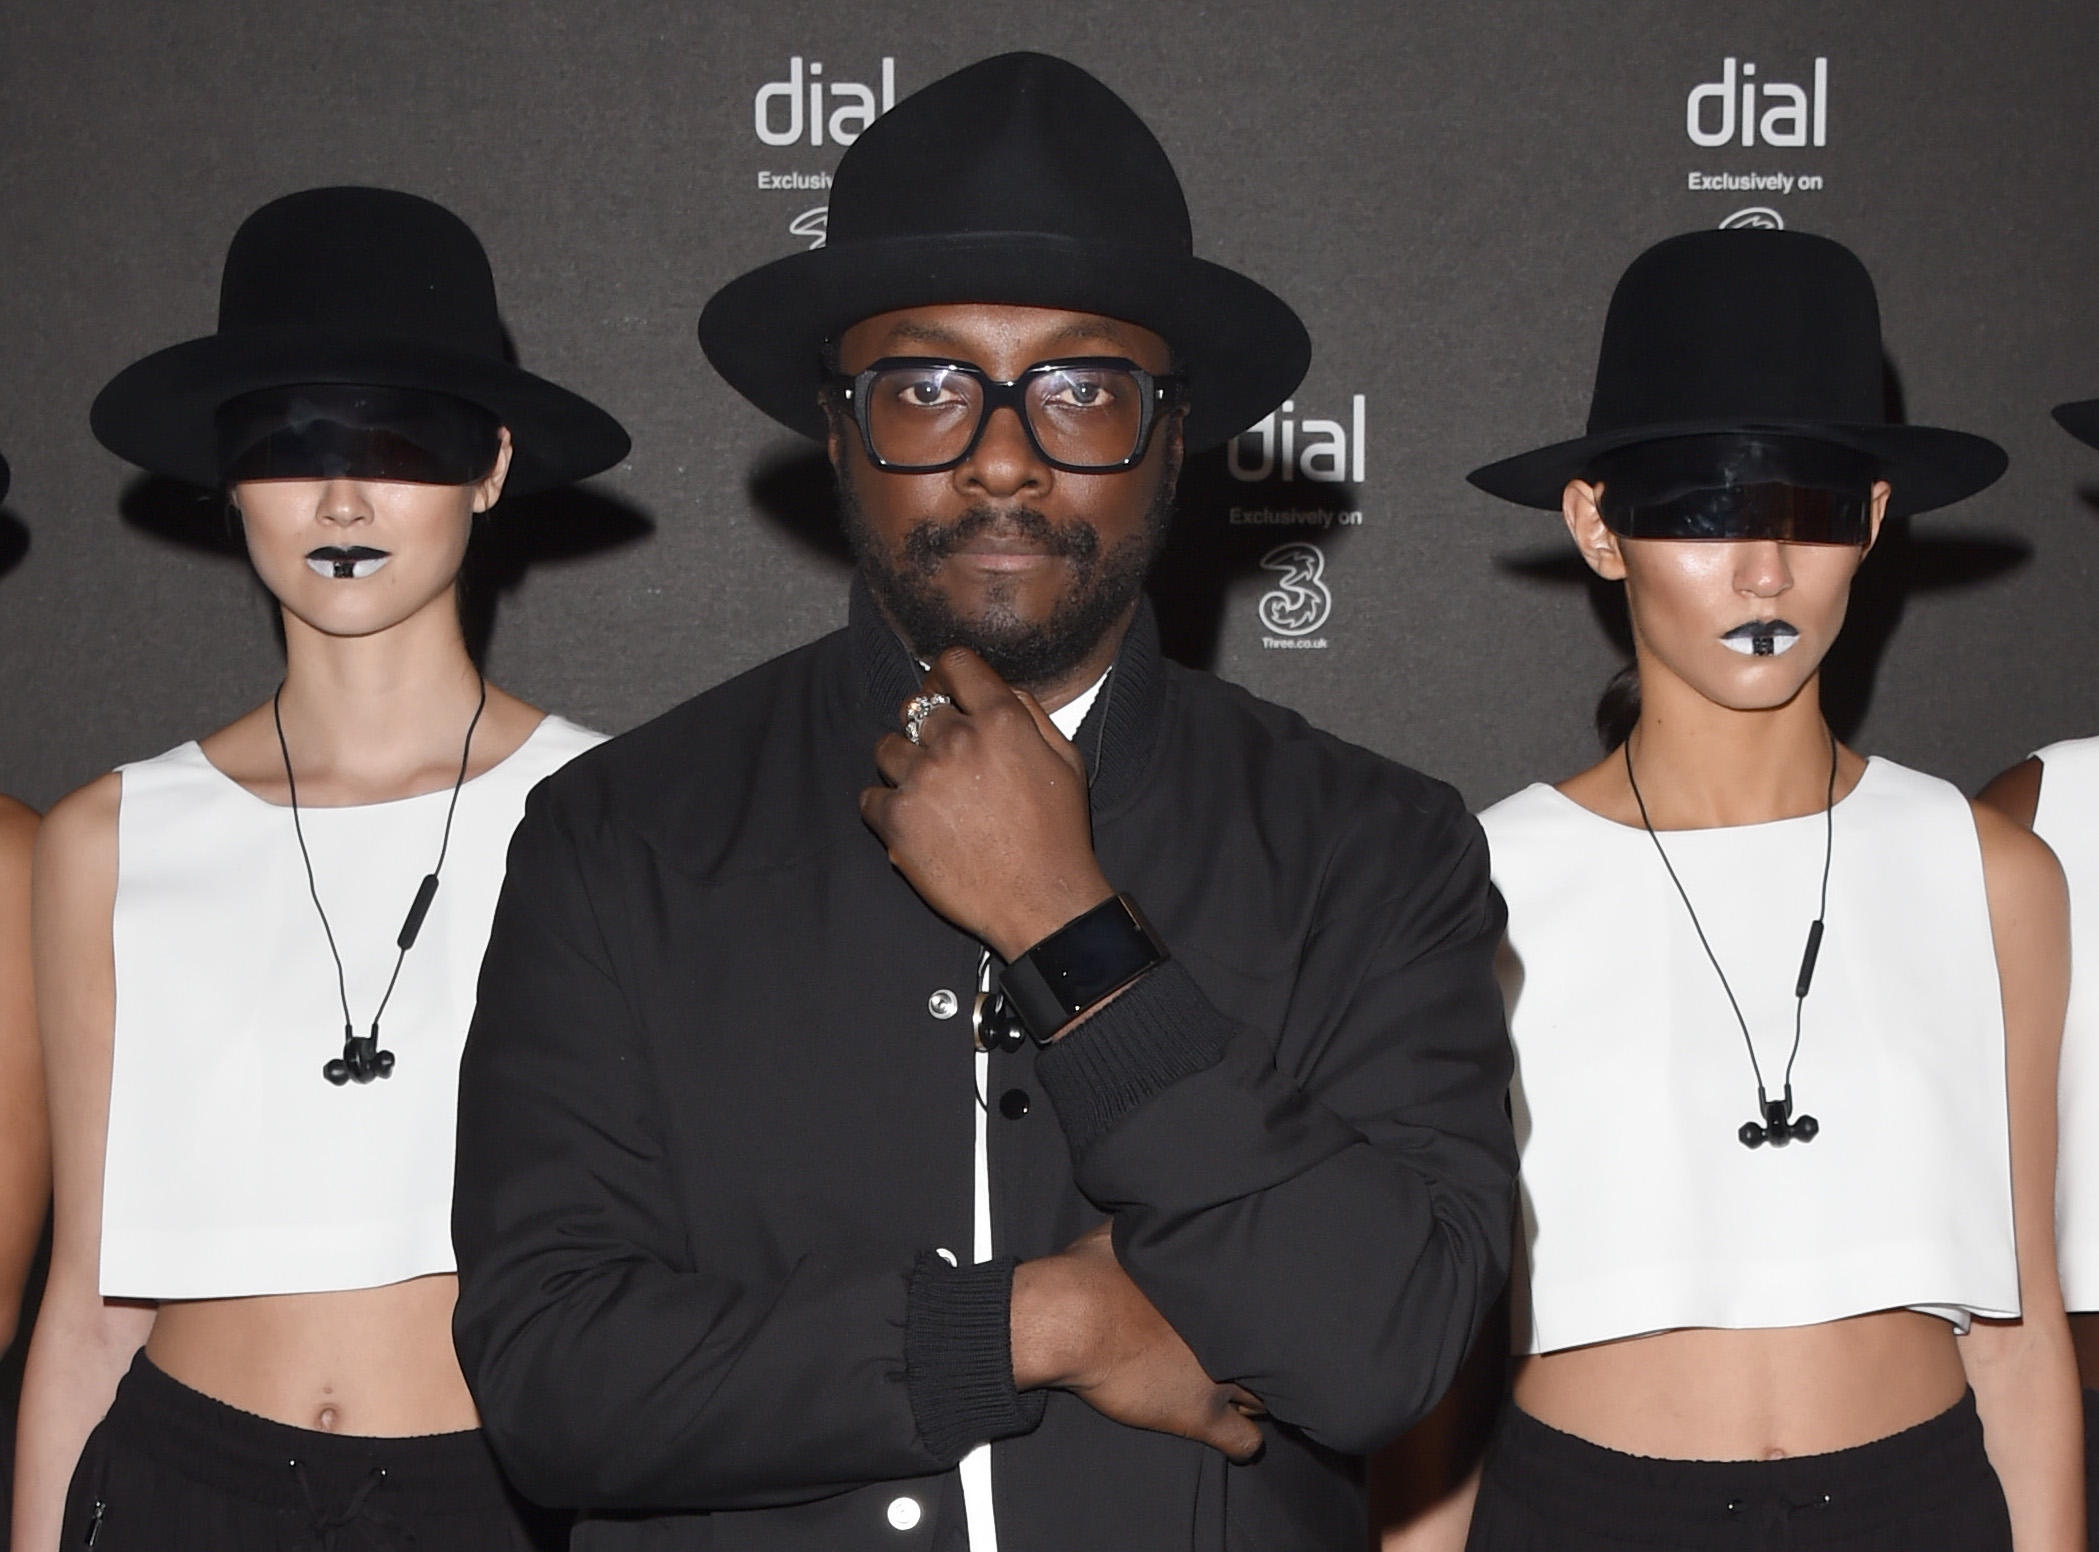 AneedA Night Out: Will.I.Am Launches Dial At Royal Albert Hall Gig Featuring Special Guests